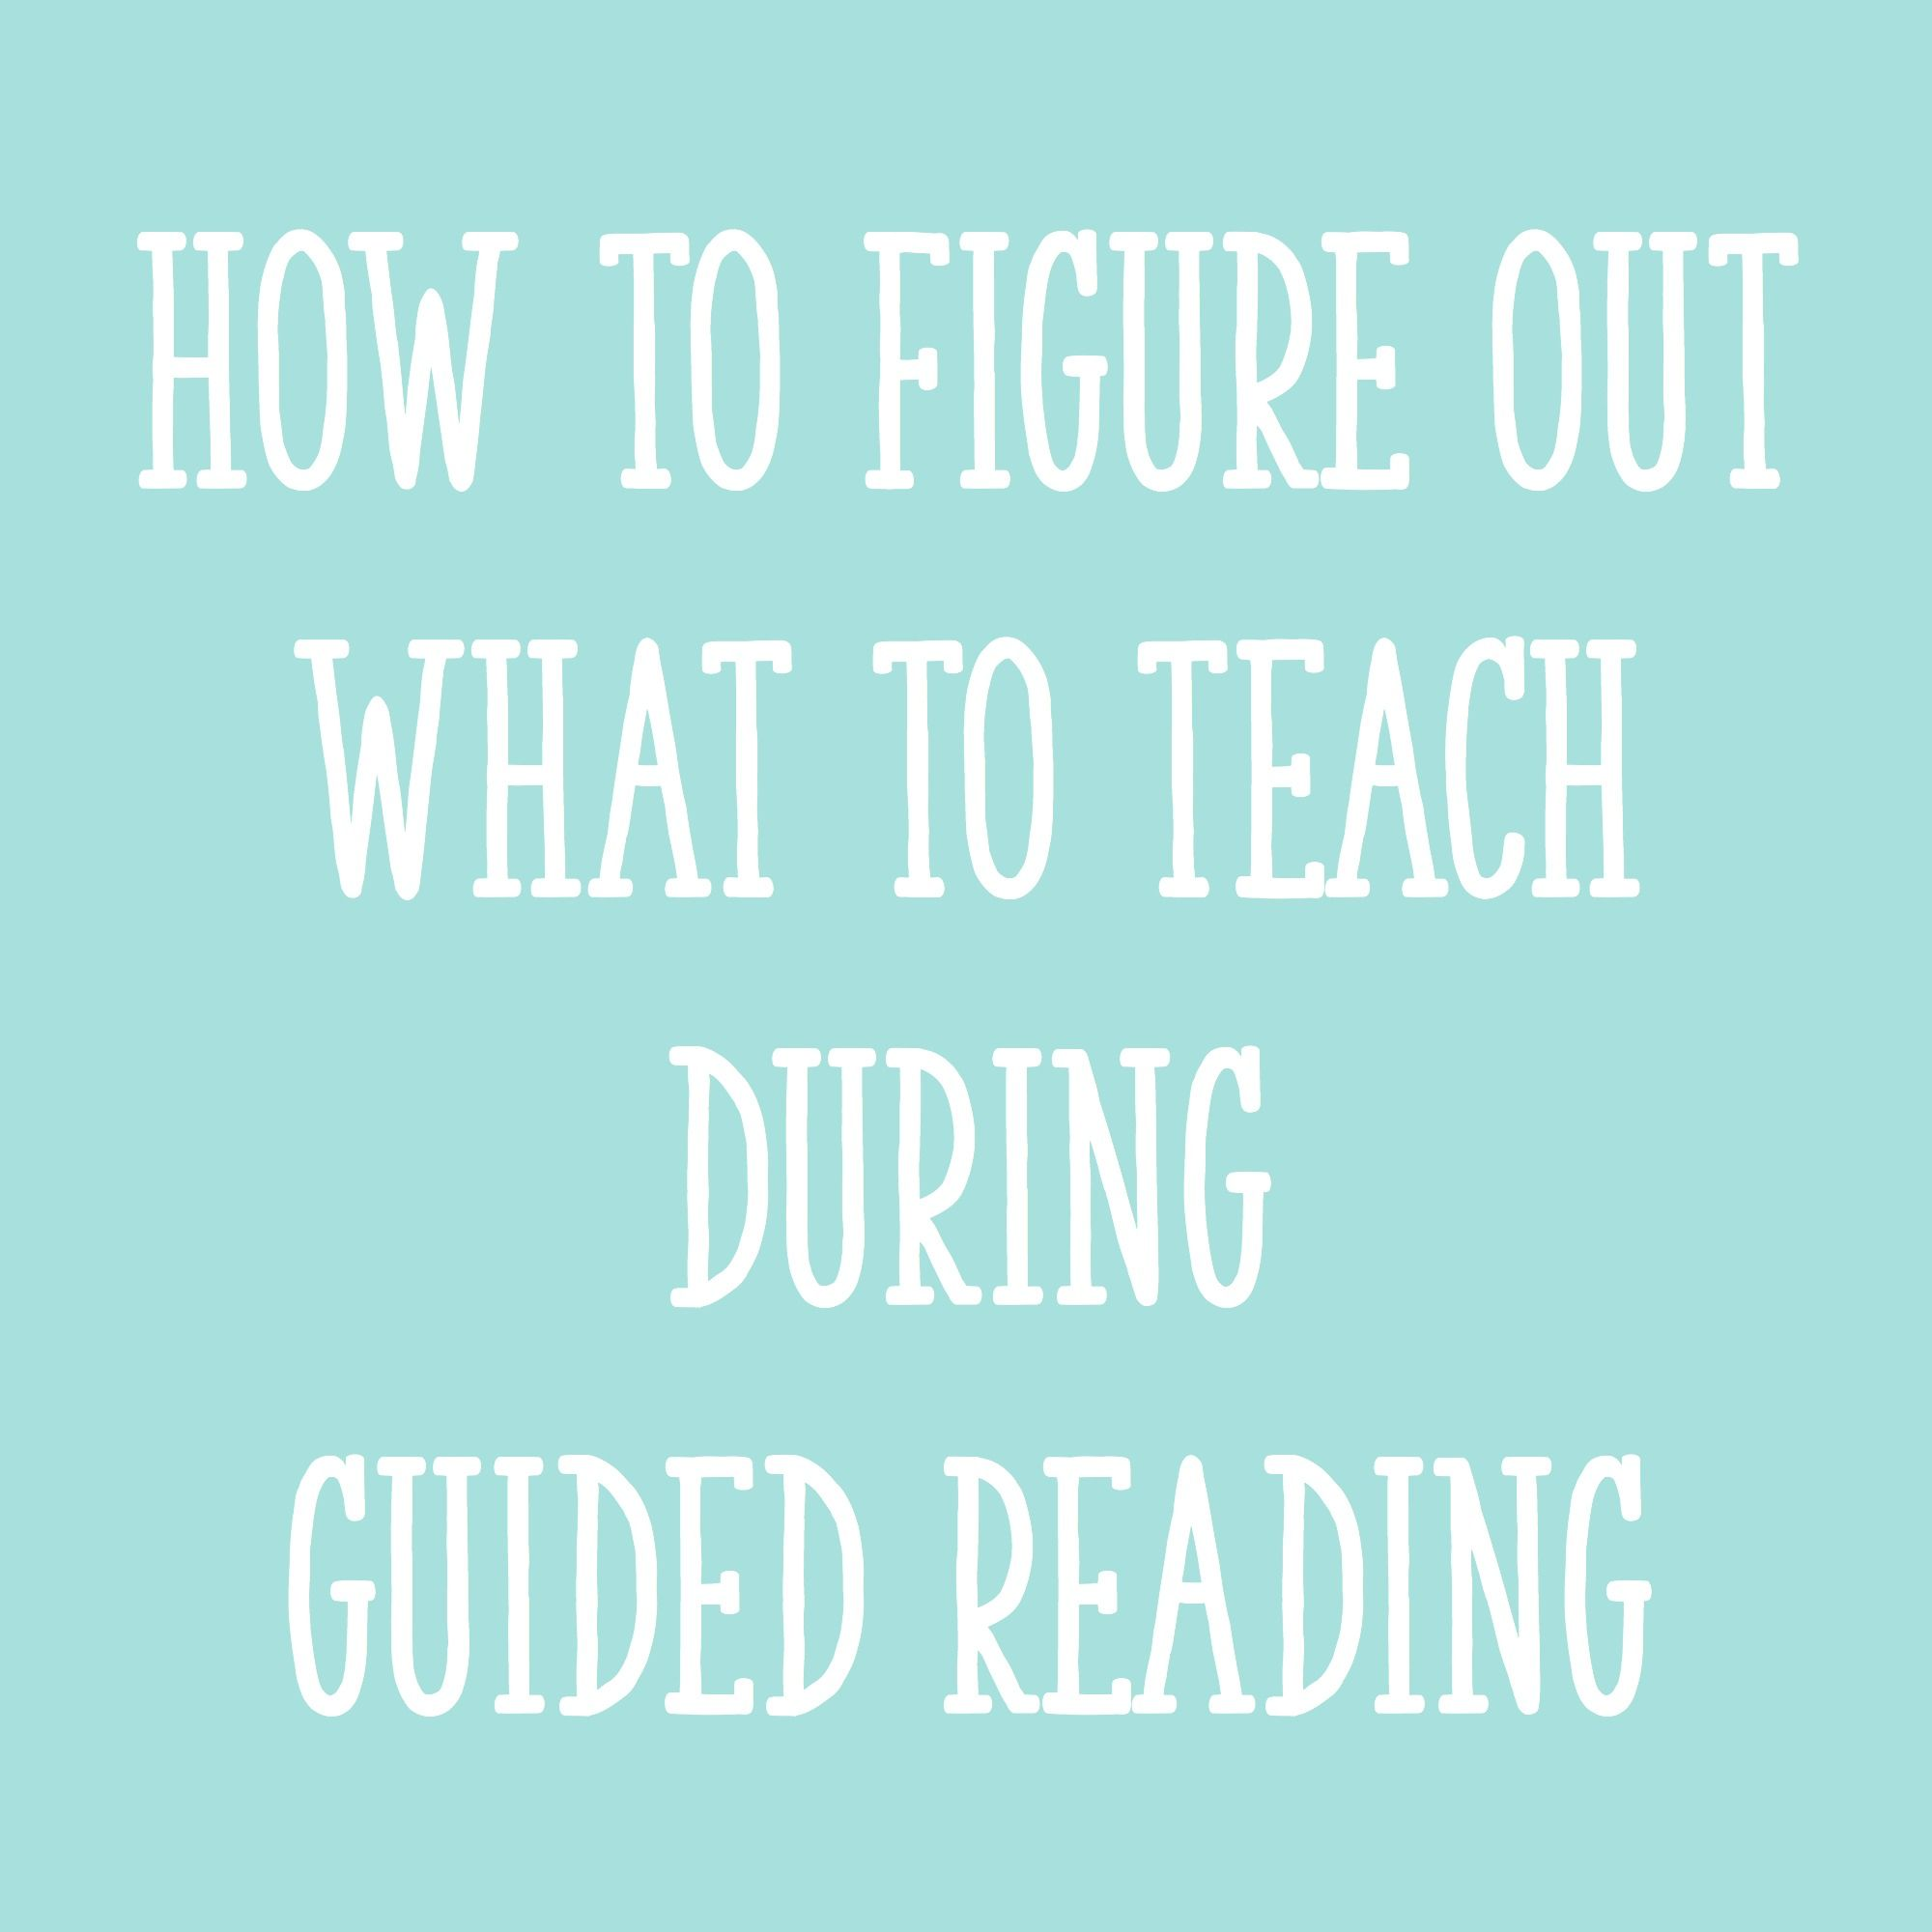 How To Figure Out What To Teach During Guided Reading